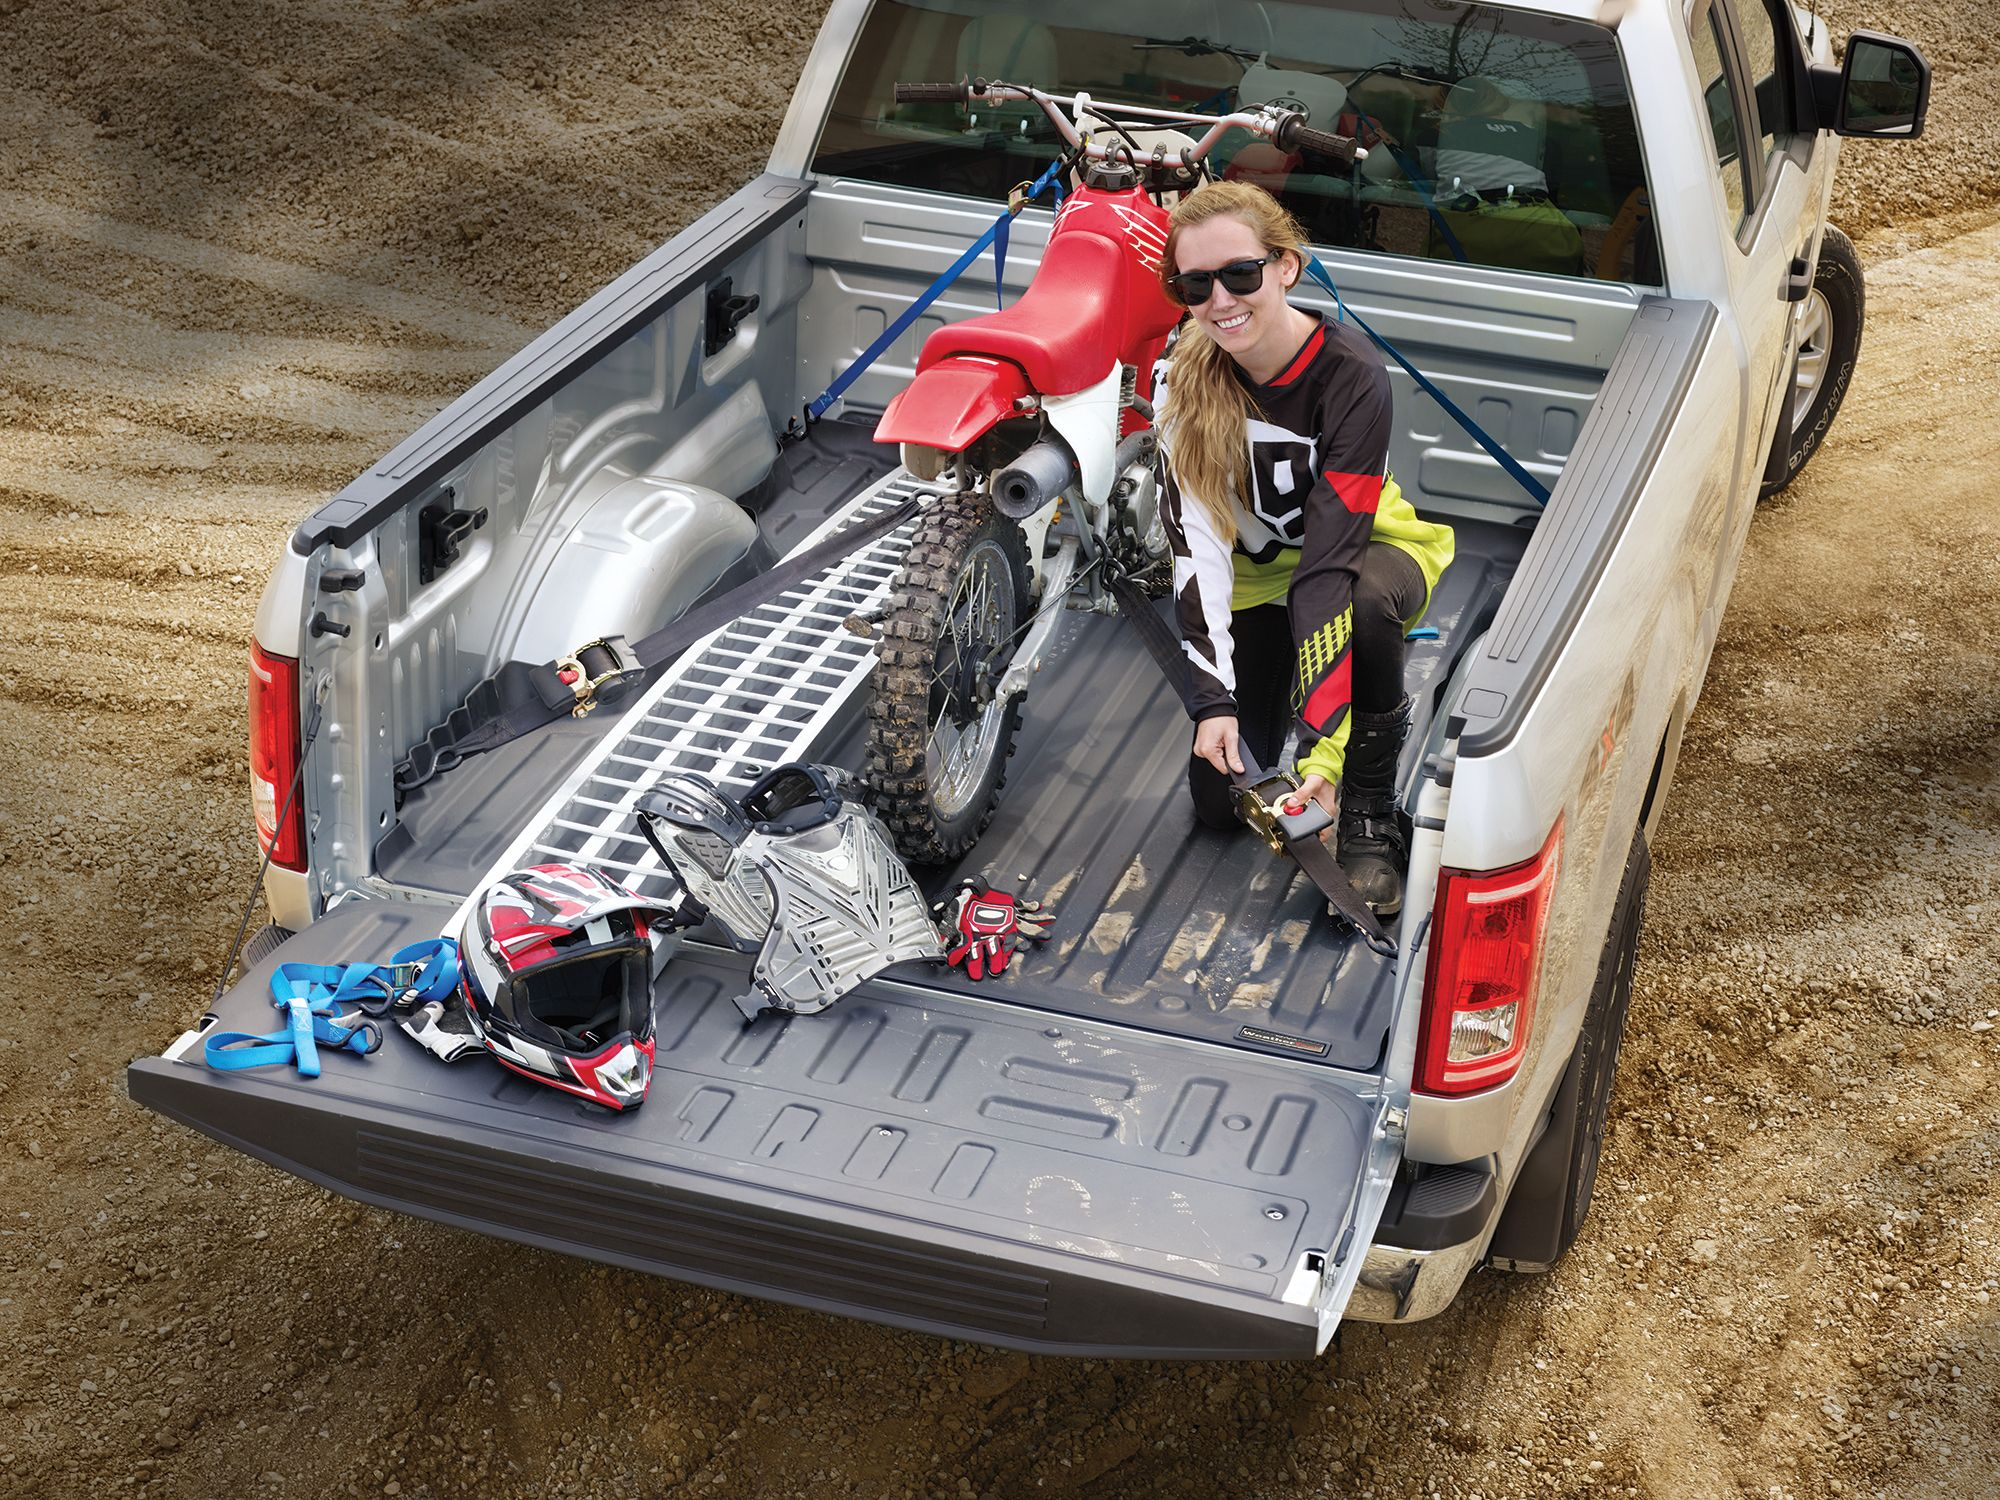 While you enjoy life offroad, WeatherTech has you covered